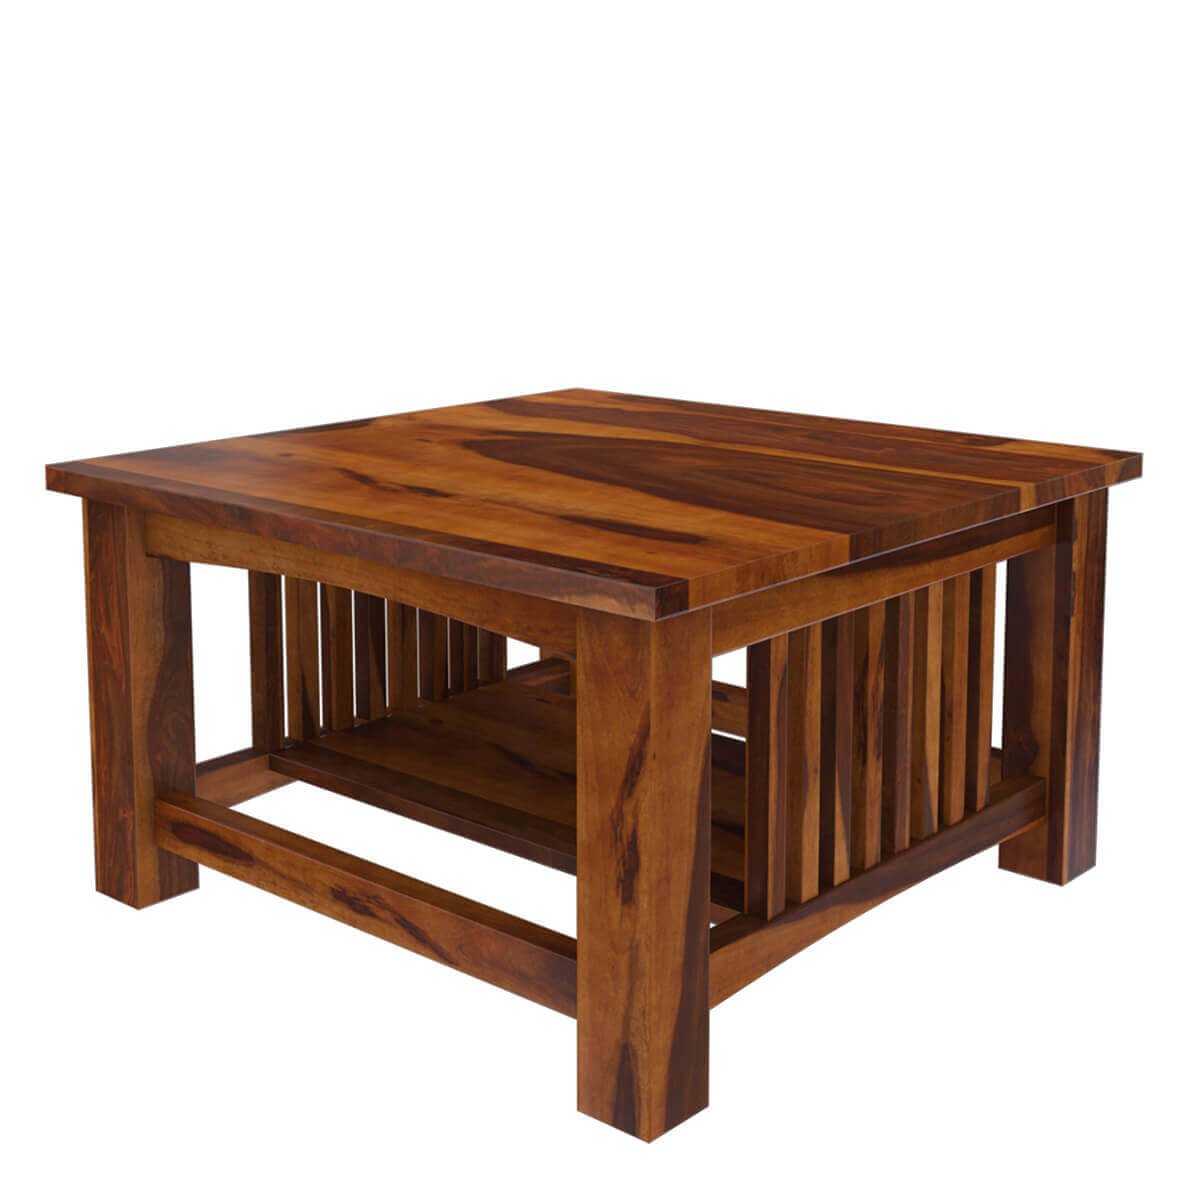 Rustic solid wood square coffee table furniture Wood square coffee tables